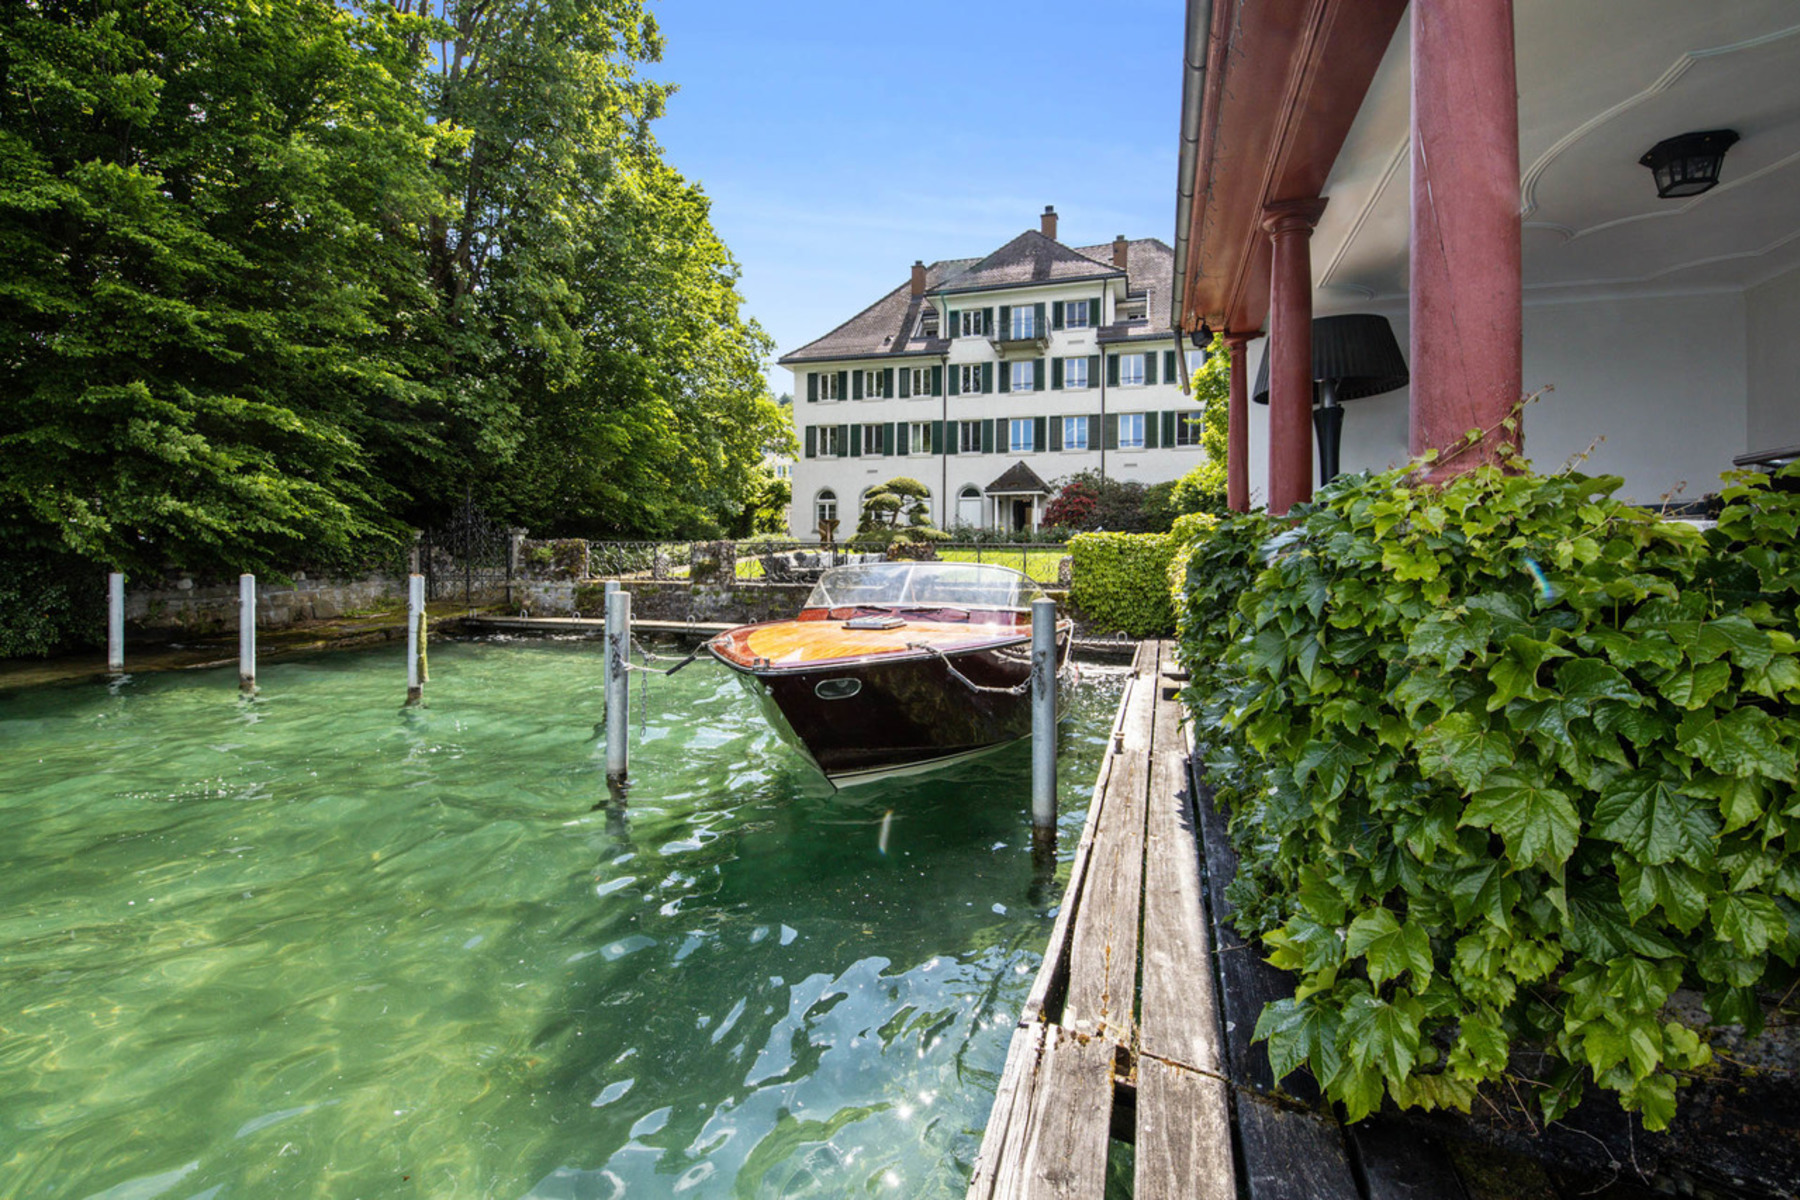 Single Family Homes for Active at Historic villa with a private shore Wädenswil Wadenswil, Zurich 8820 Switzerland